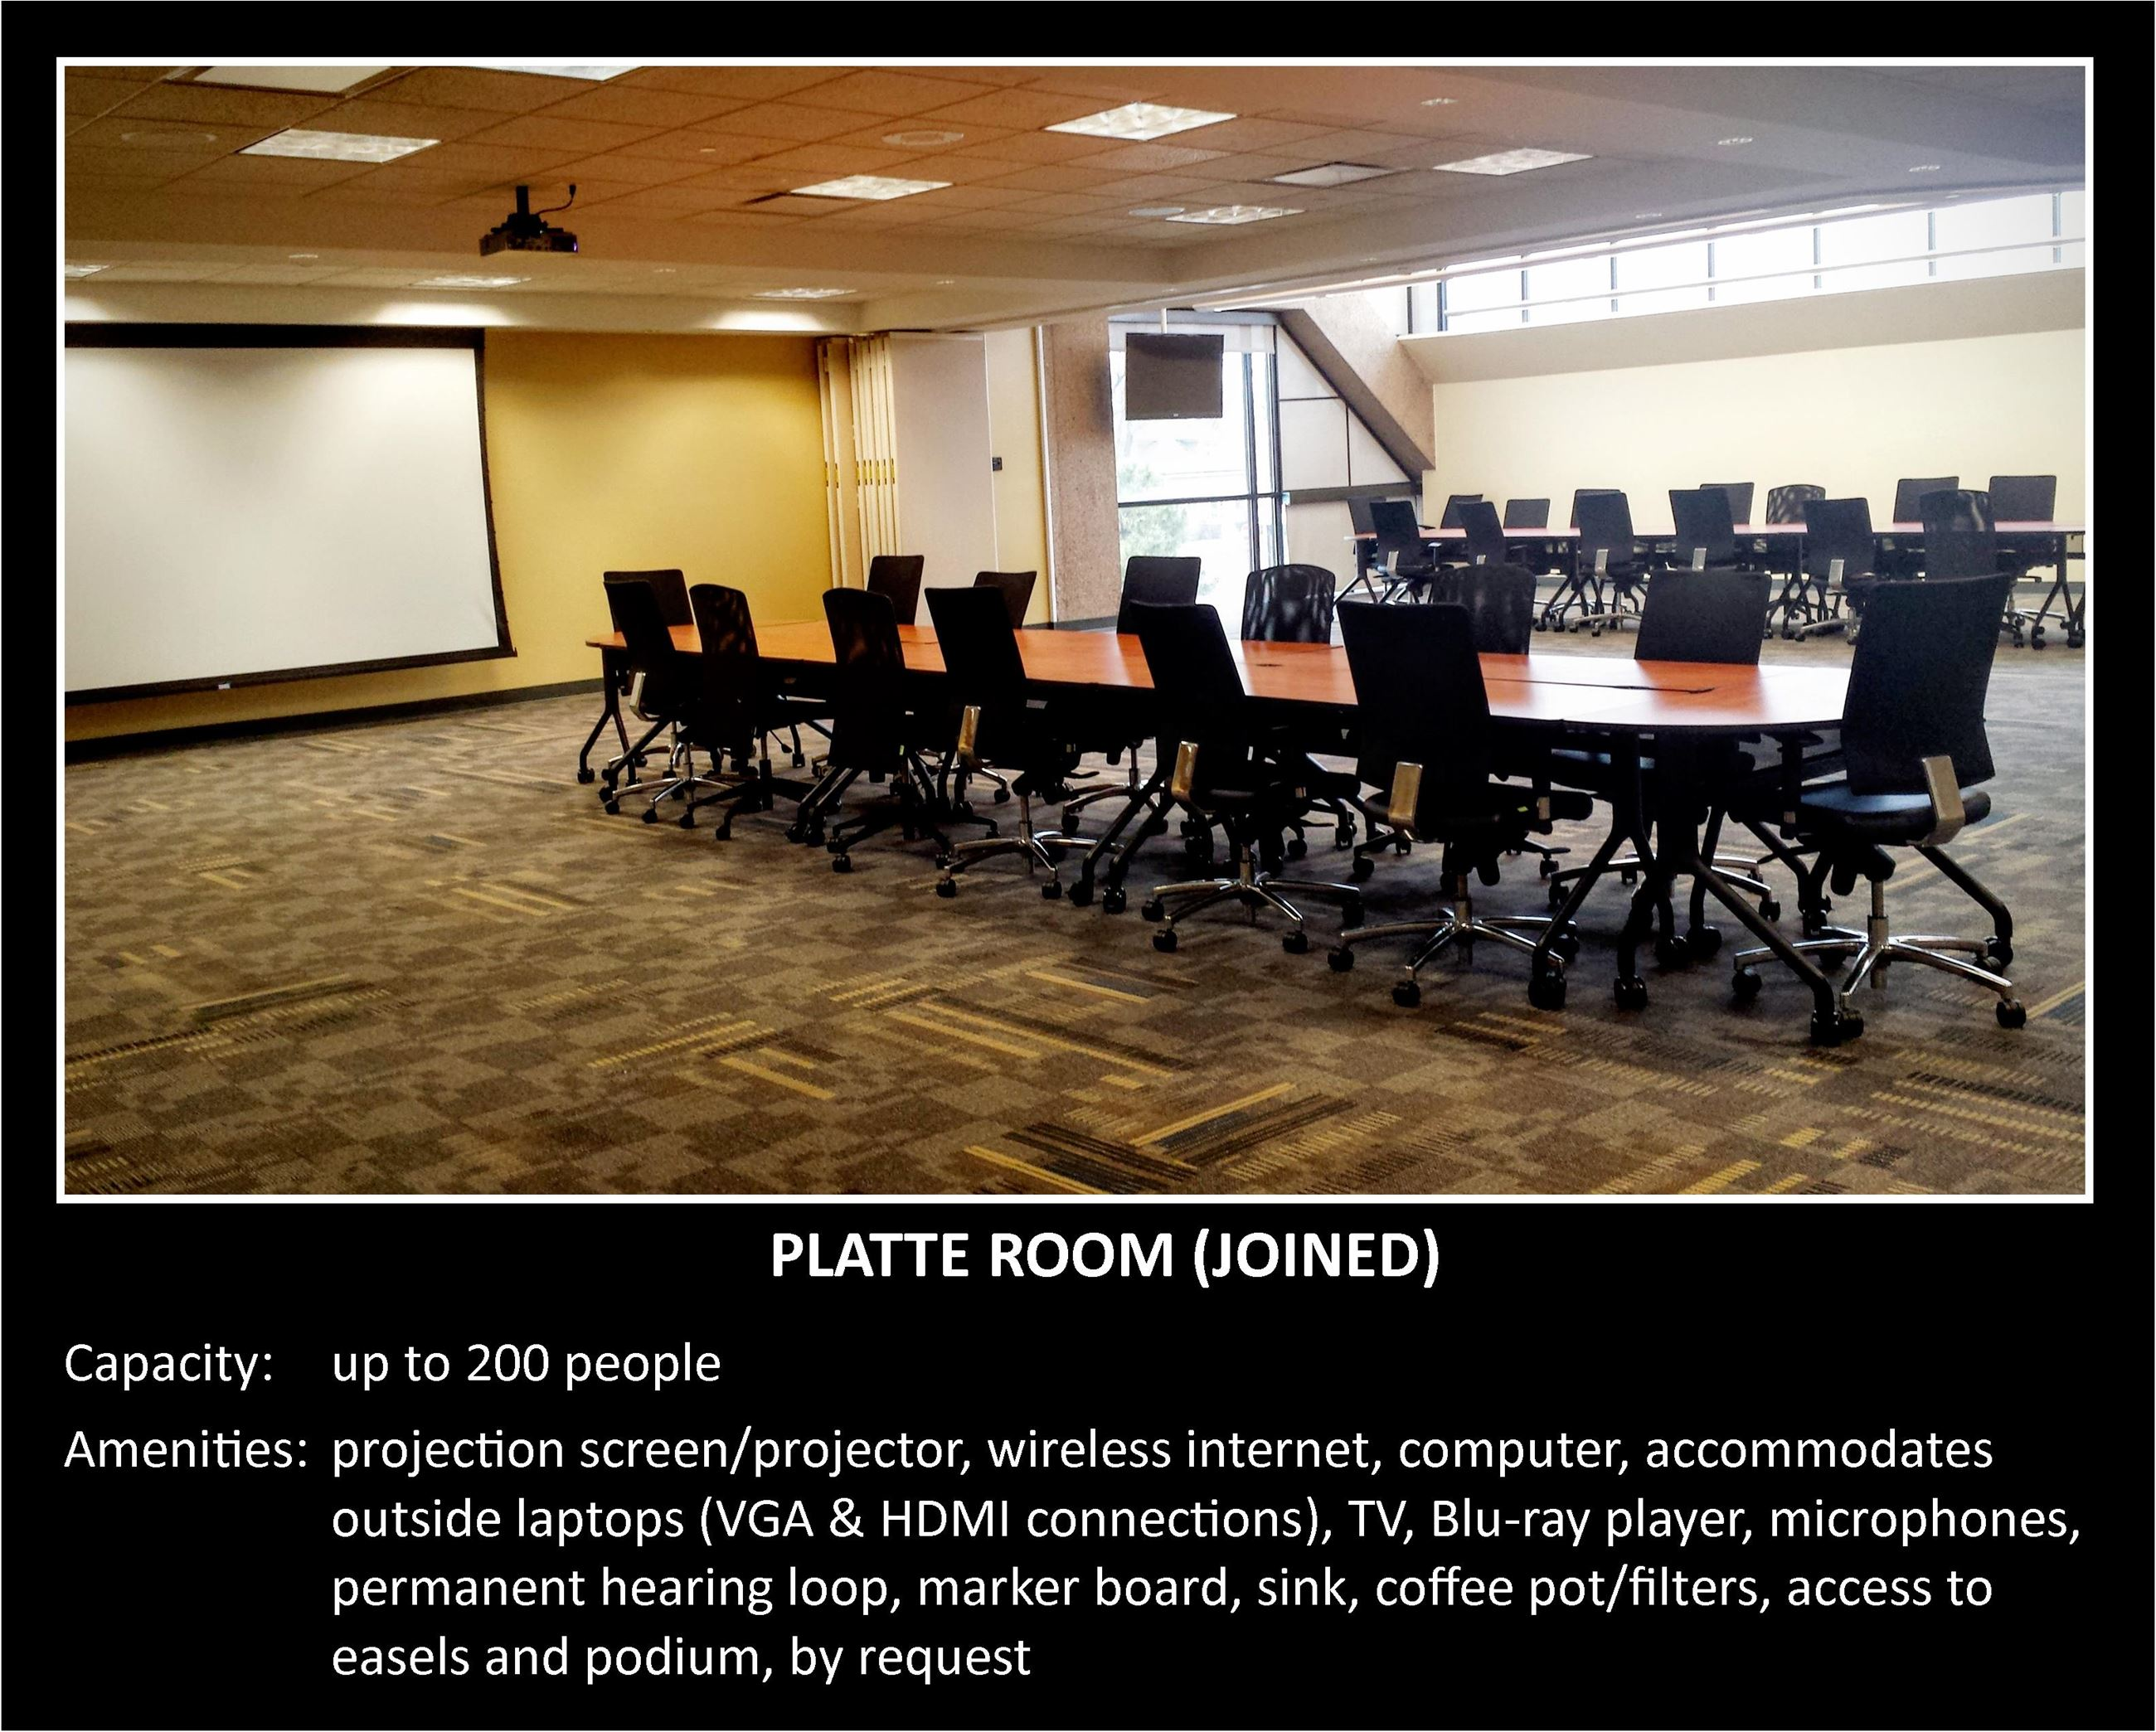 Platte Room - Joined